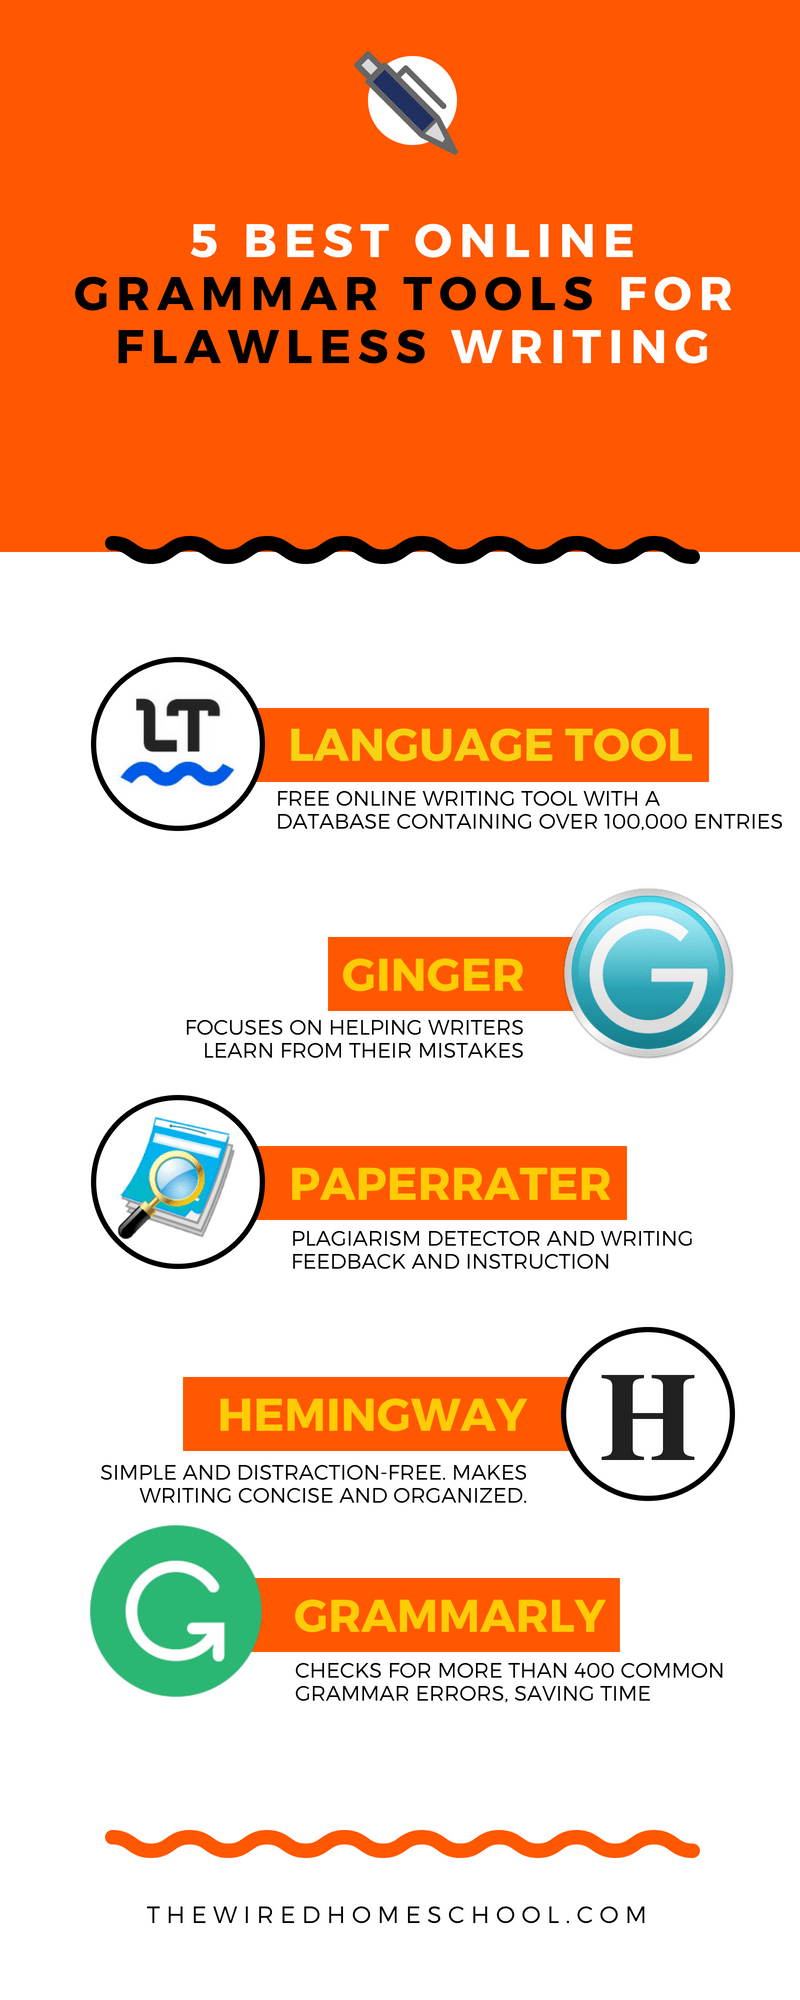 5 Best Online Grammar Tools for Flawless Writing 1. Language Tool 2. Ginger 3. PaperRater 4. Hemingway 5. Grammarly